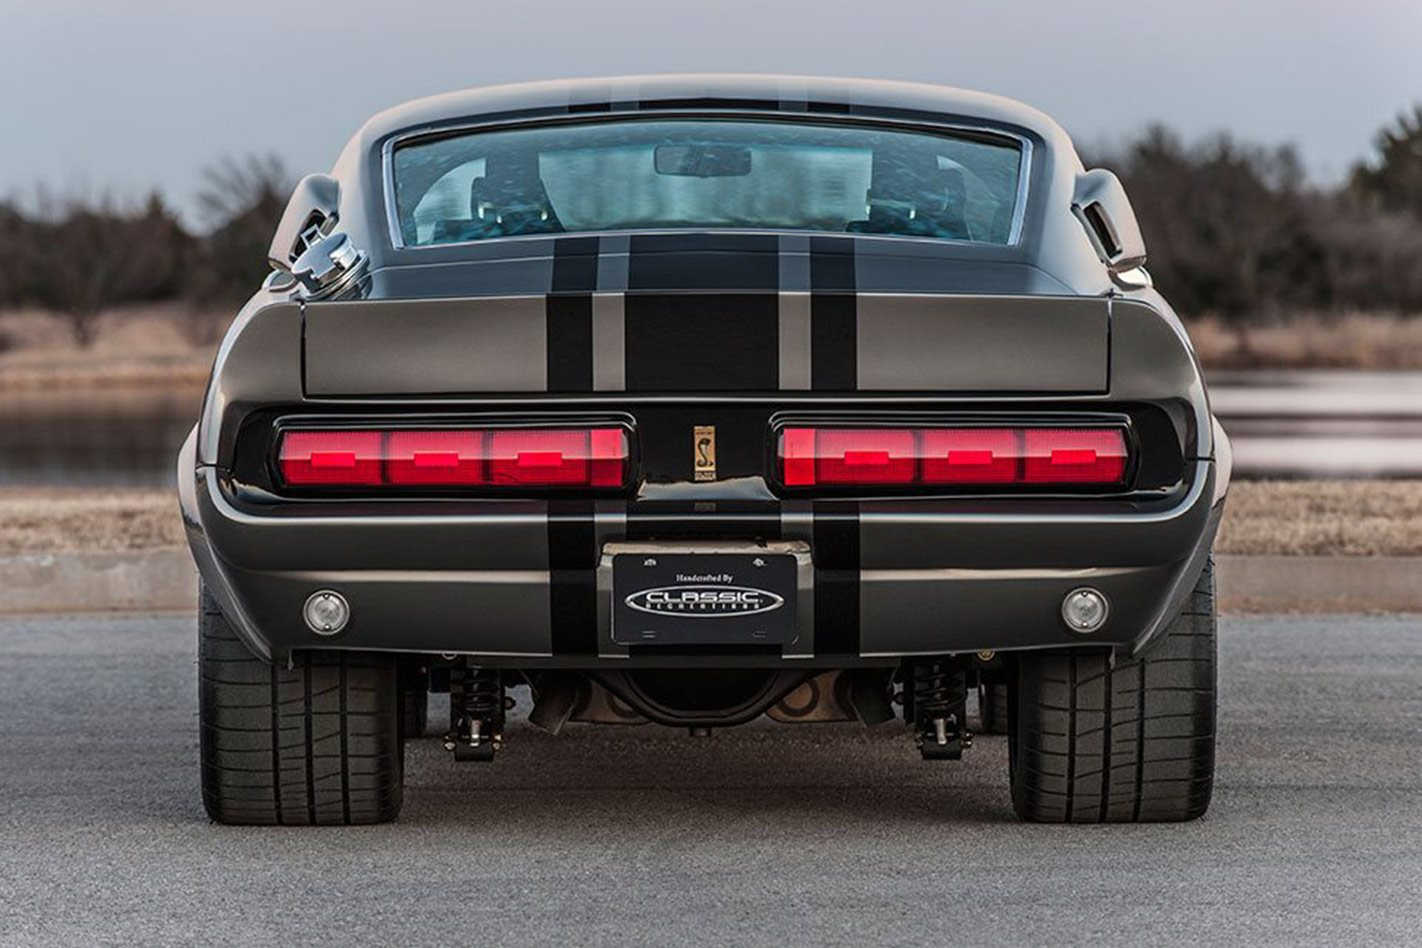 Carbon Fibre 1967 Shelby GT500 is wildly expensive